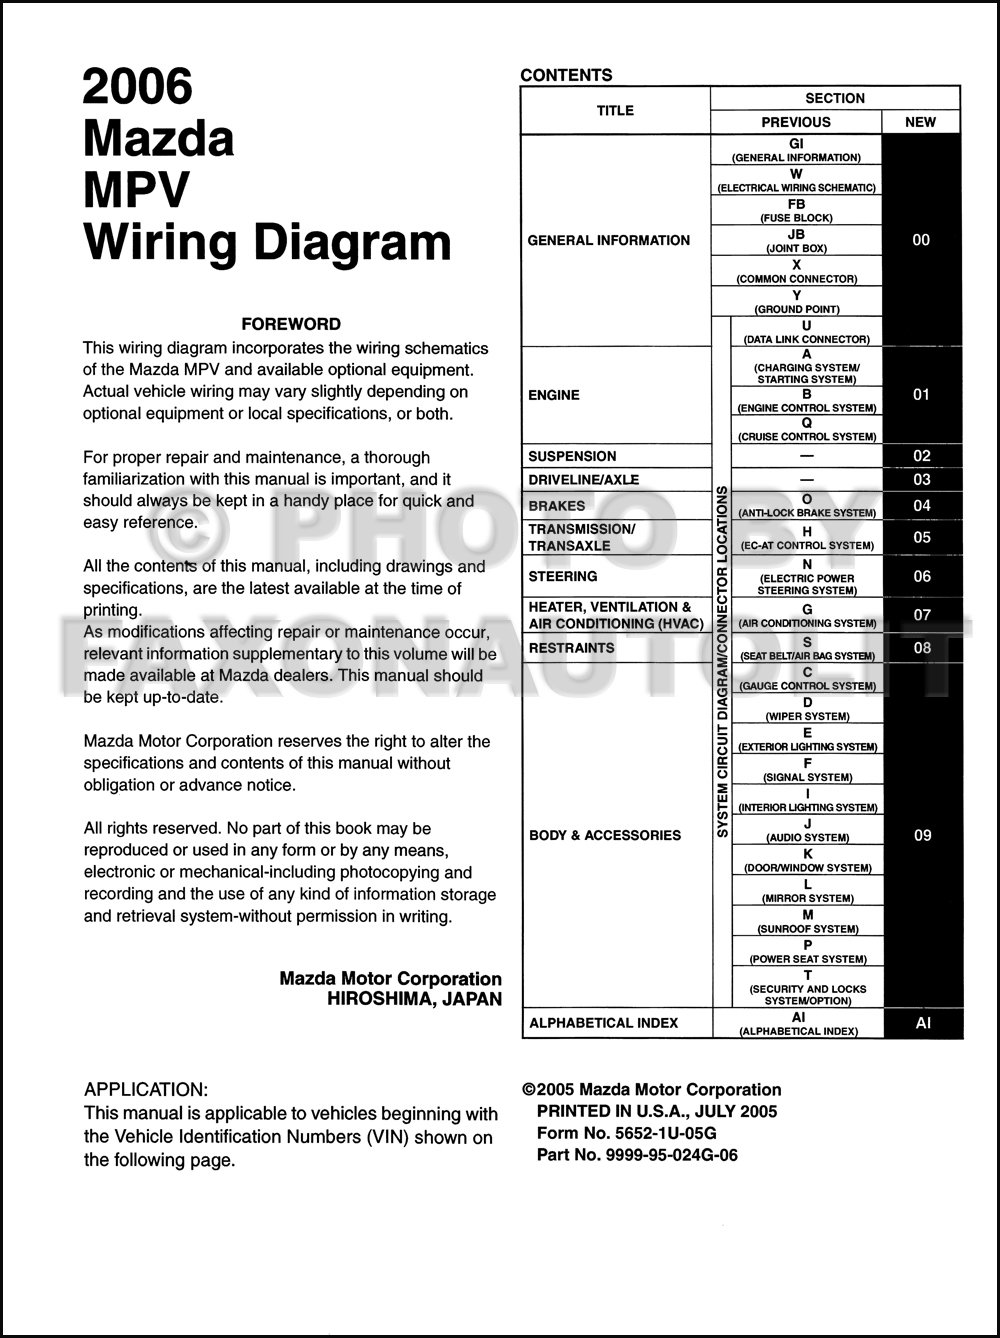 2006 Mazda 3 Wiring Diagrams Opinions About Diagram Sv650 Mpv Manual Original Harness